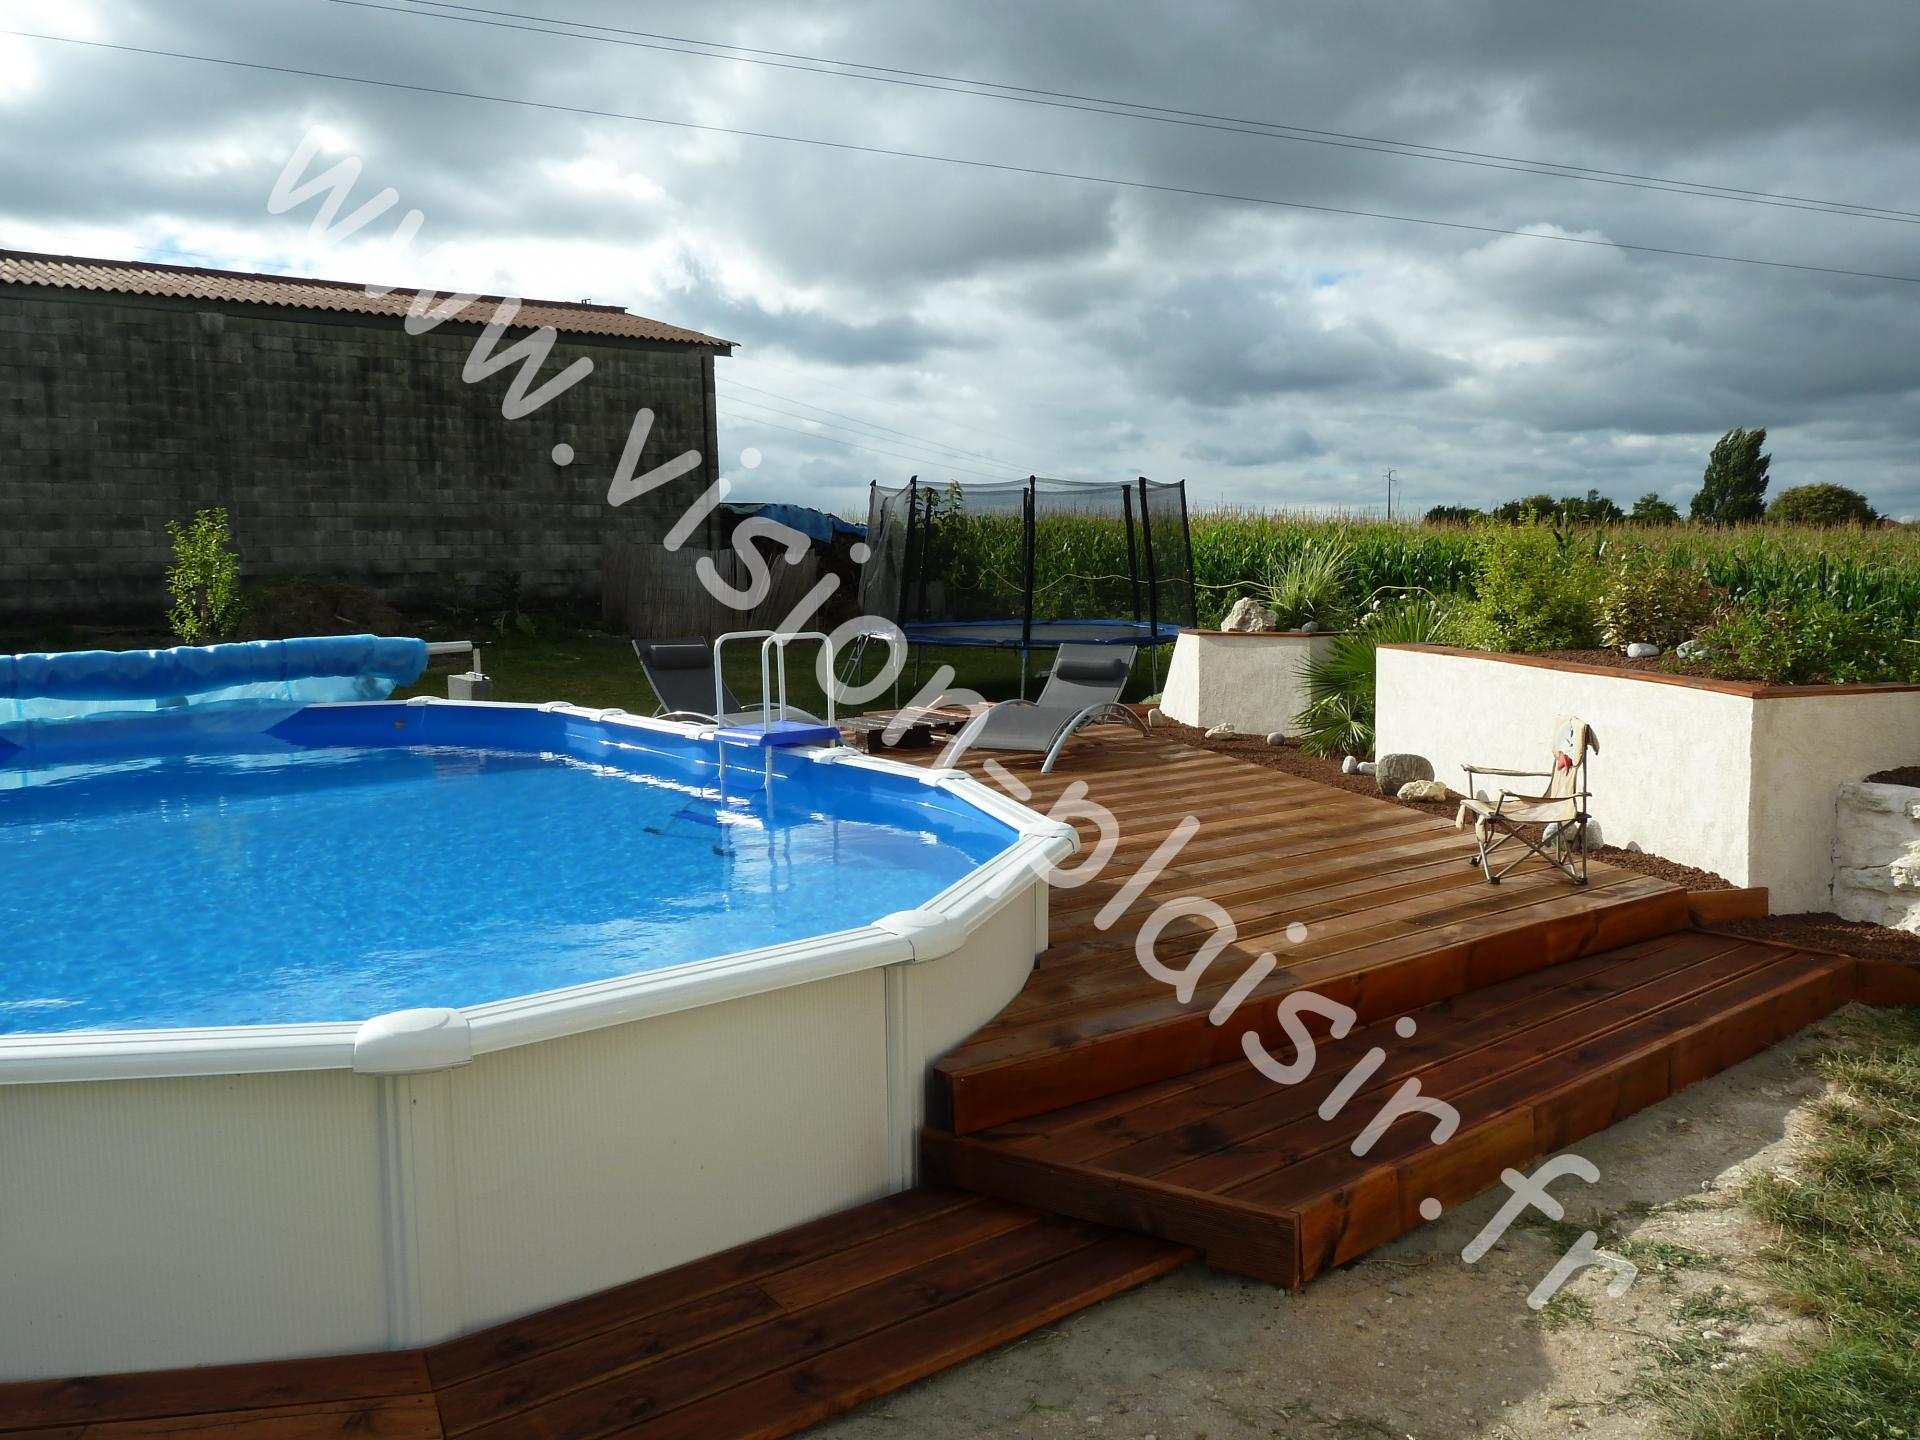 Blog de vision plaisir piscine hors sol semi enterr e for Piscine hors sol metal